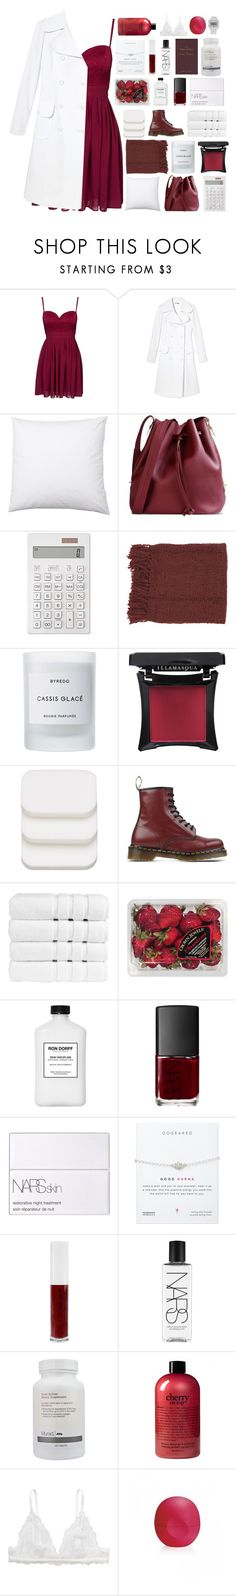 """""""like to join my new taglist"""" by baesically-addy ❤ liked on Polyvore featuring Elise Ryan, Michael Kors, Sophie Hulme, Muji, Surya, Byredo, Illamasqua, COVERGIRL, Dr. Martens and Christy"""